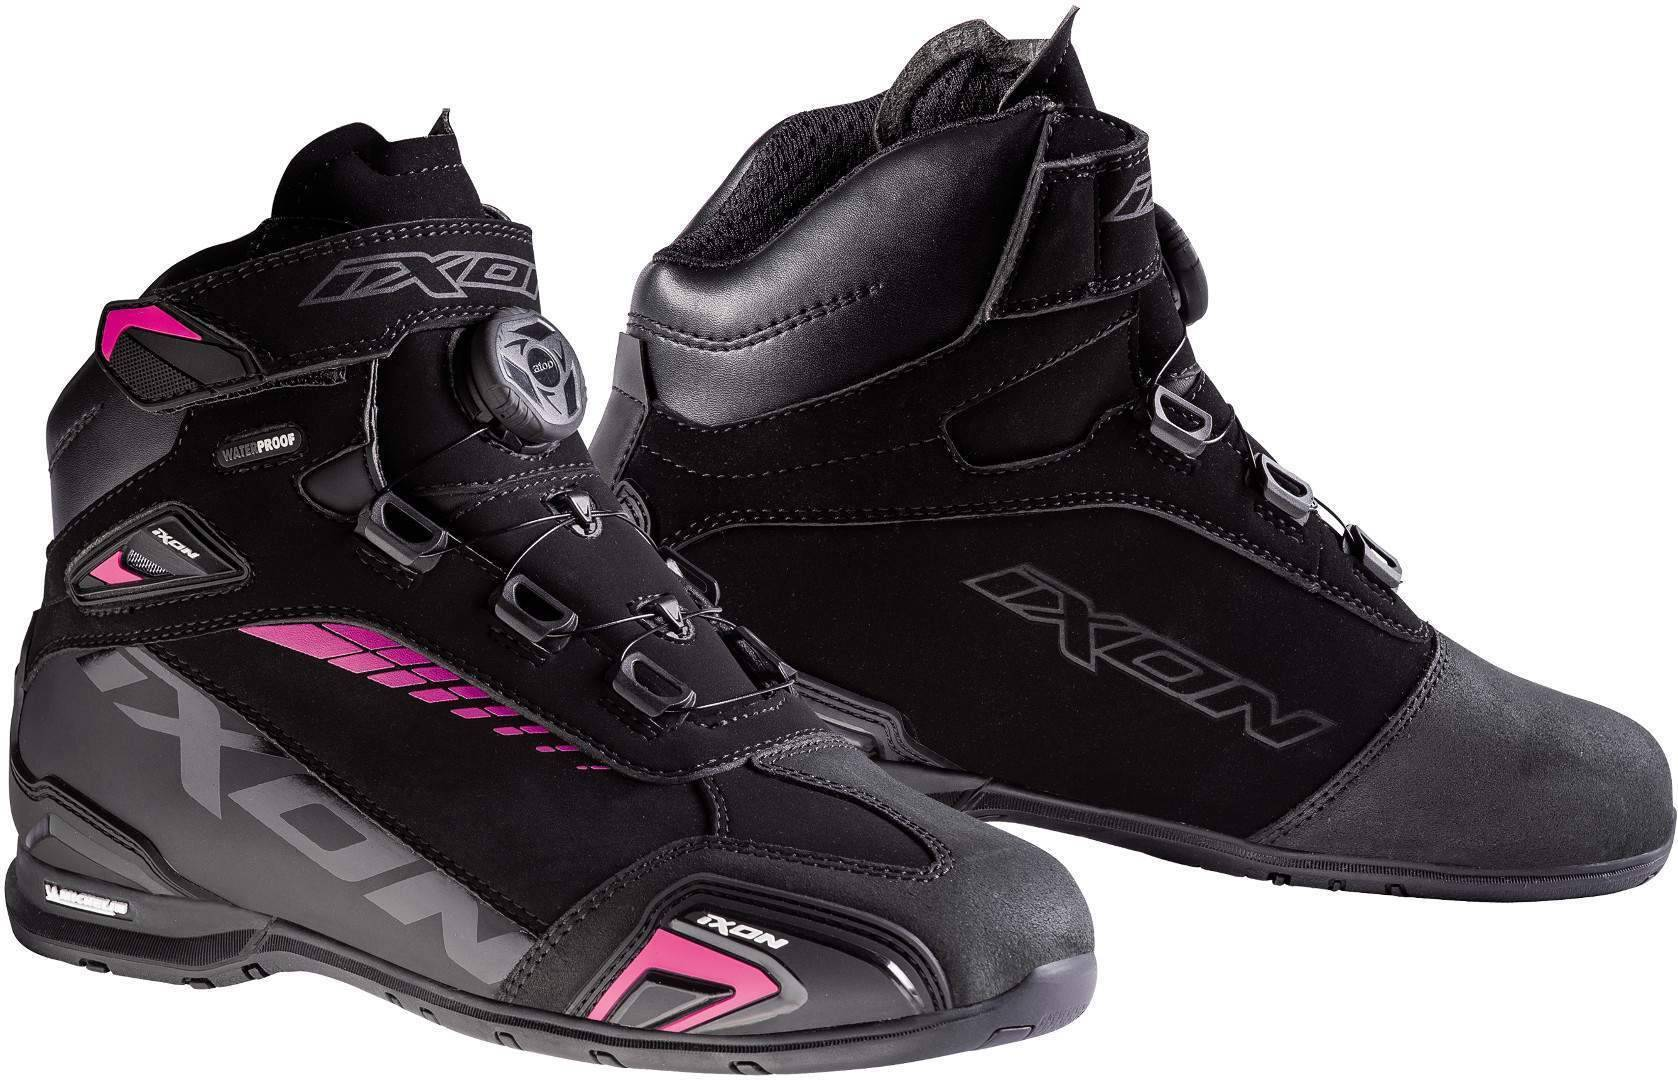 Ixon Bull WP L Ladies Motorcycle Shoes  - Size: 36